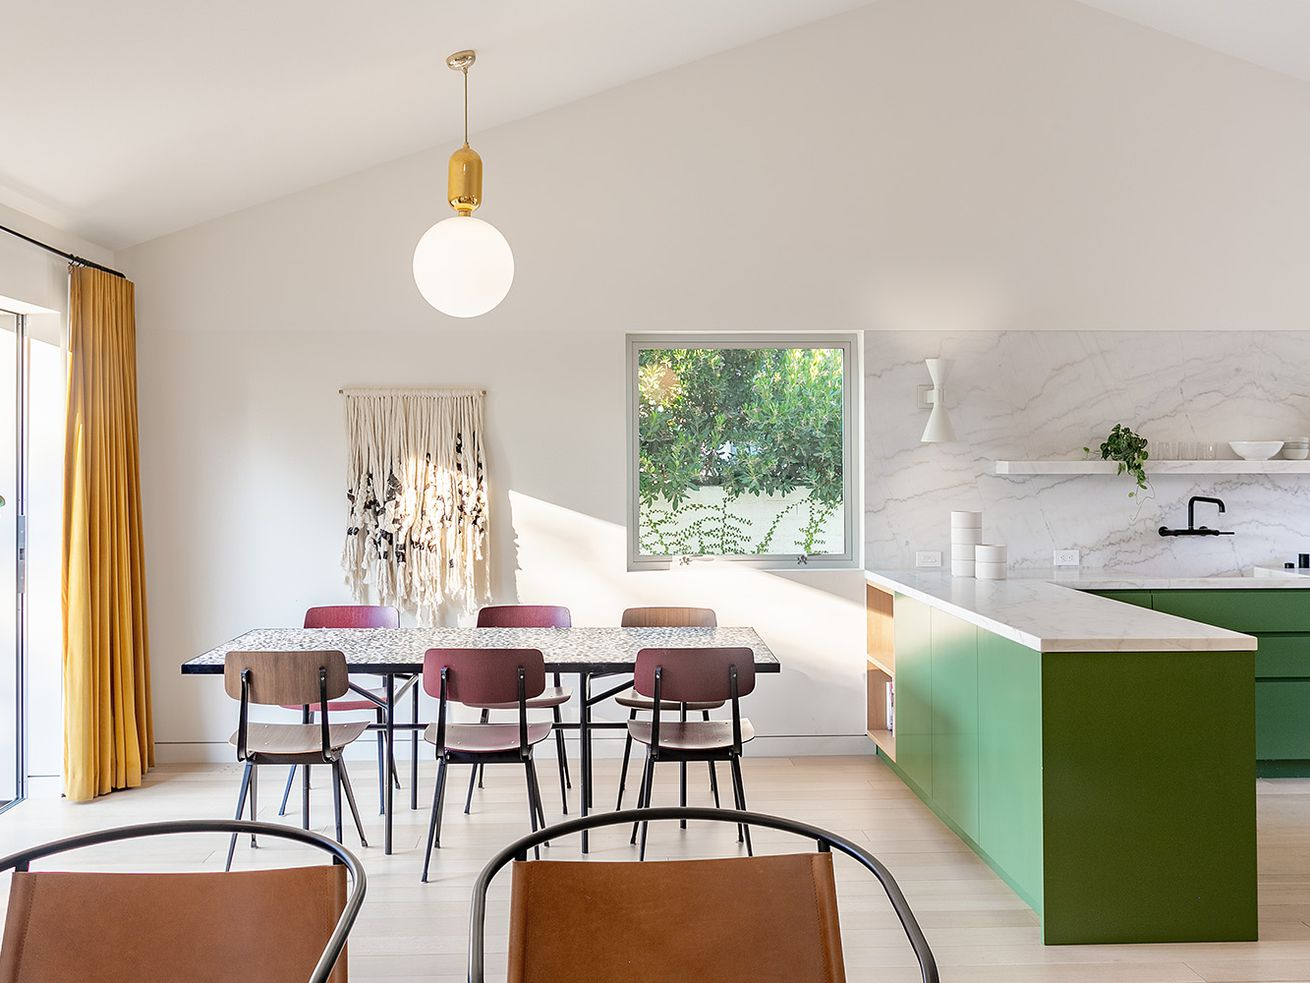 Architect Couple?s L.A. Courtyard House Comes With a Scalloped, Round Kitchen Island and Le Corbusier Lighting